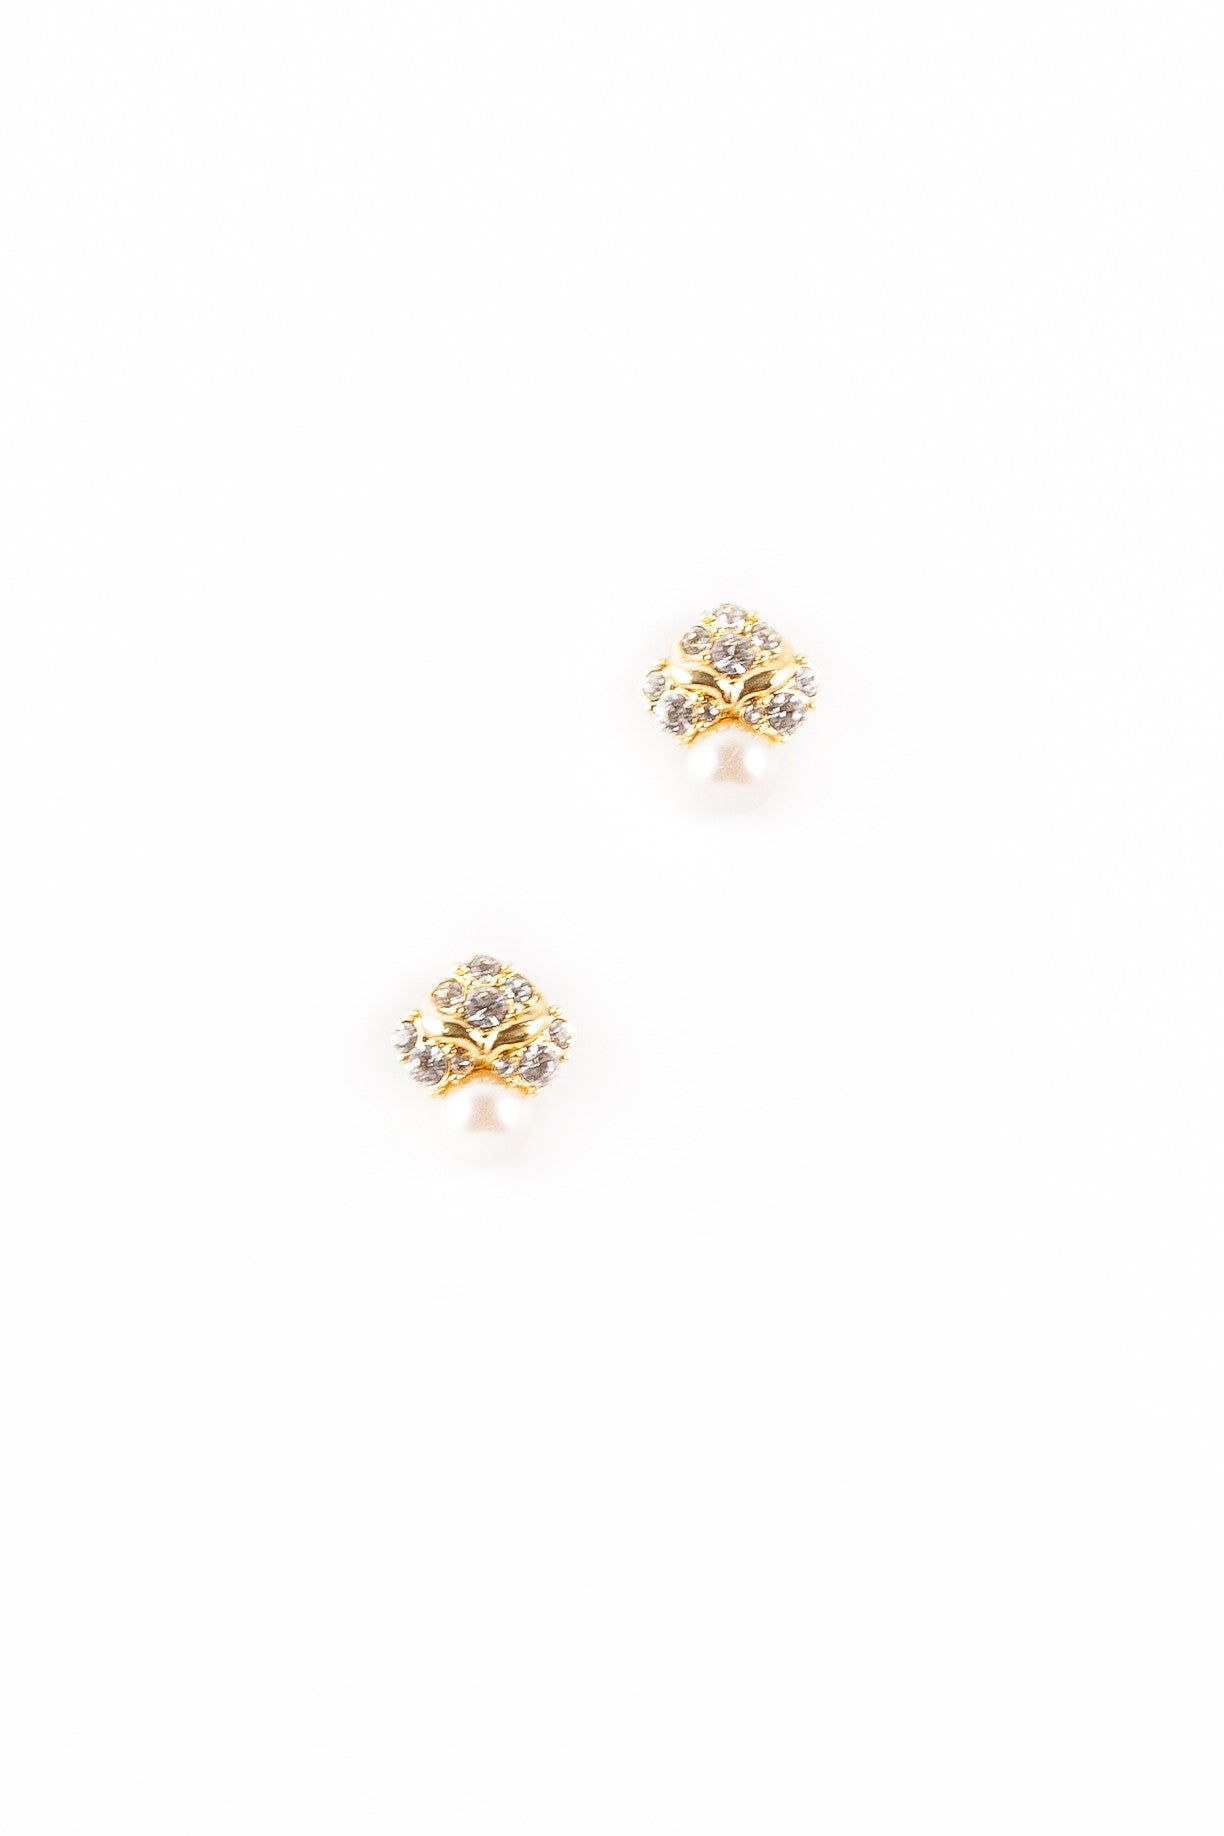 70's__Monet__Mixed Rhinestone Cluster Pearl Stud Earrings